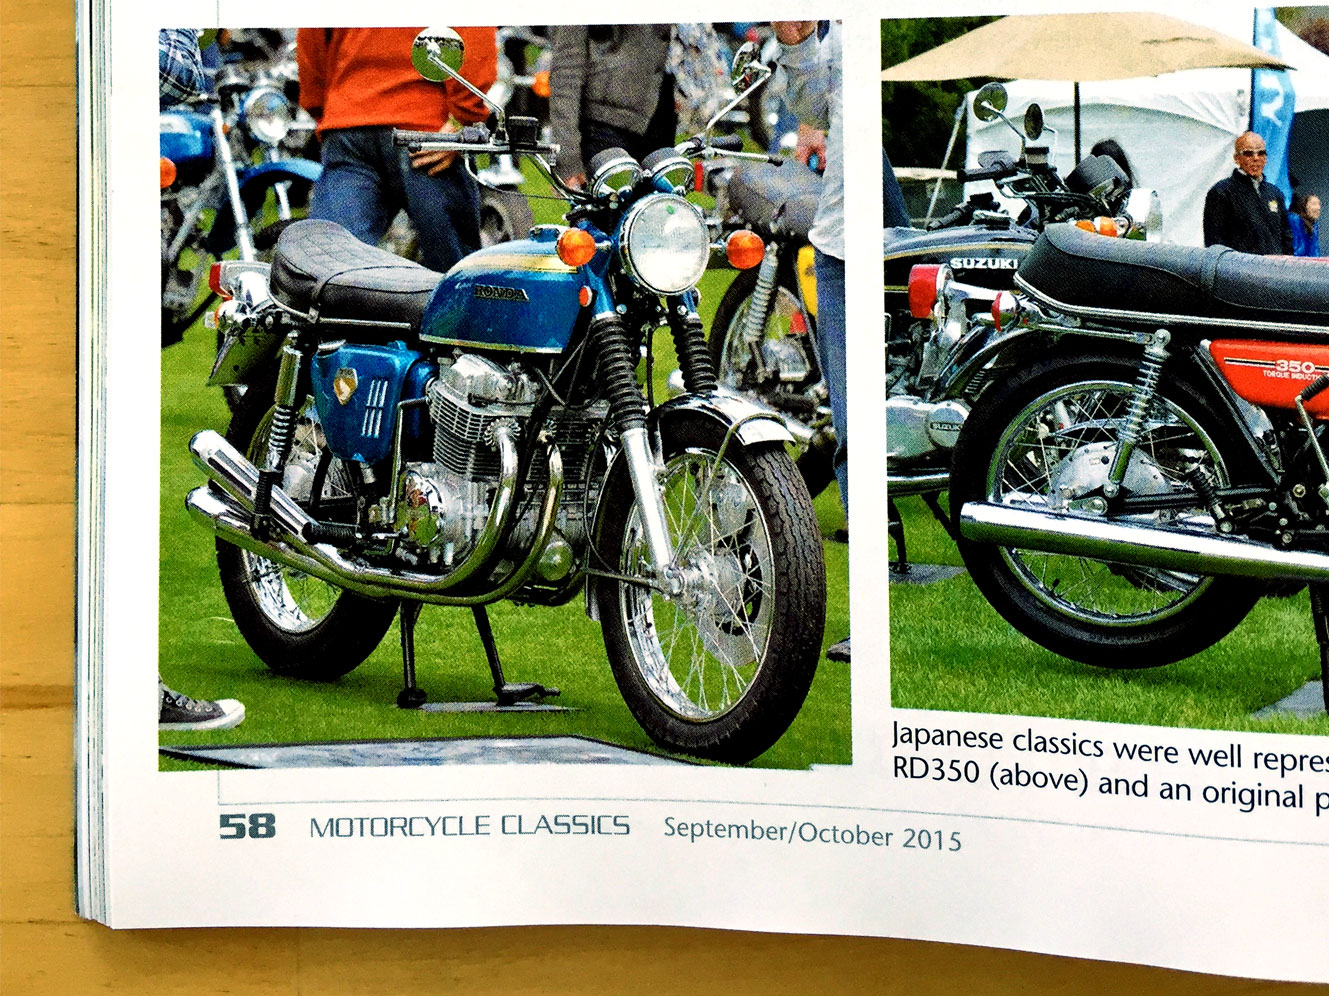 Motorcycle Classics September/October 2015 Page 58